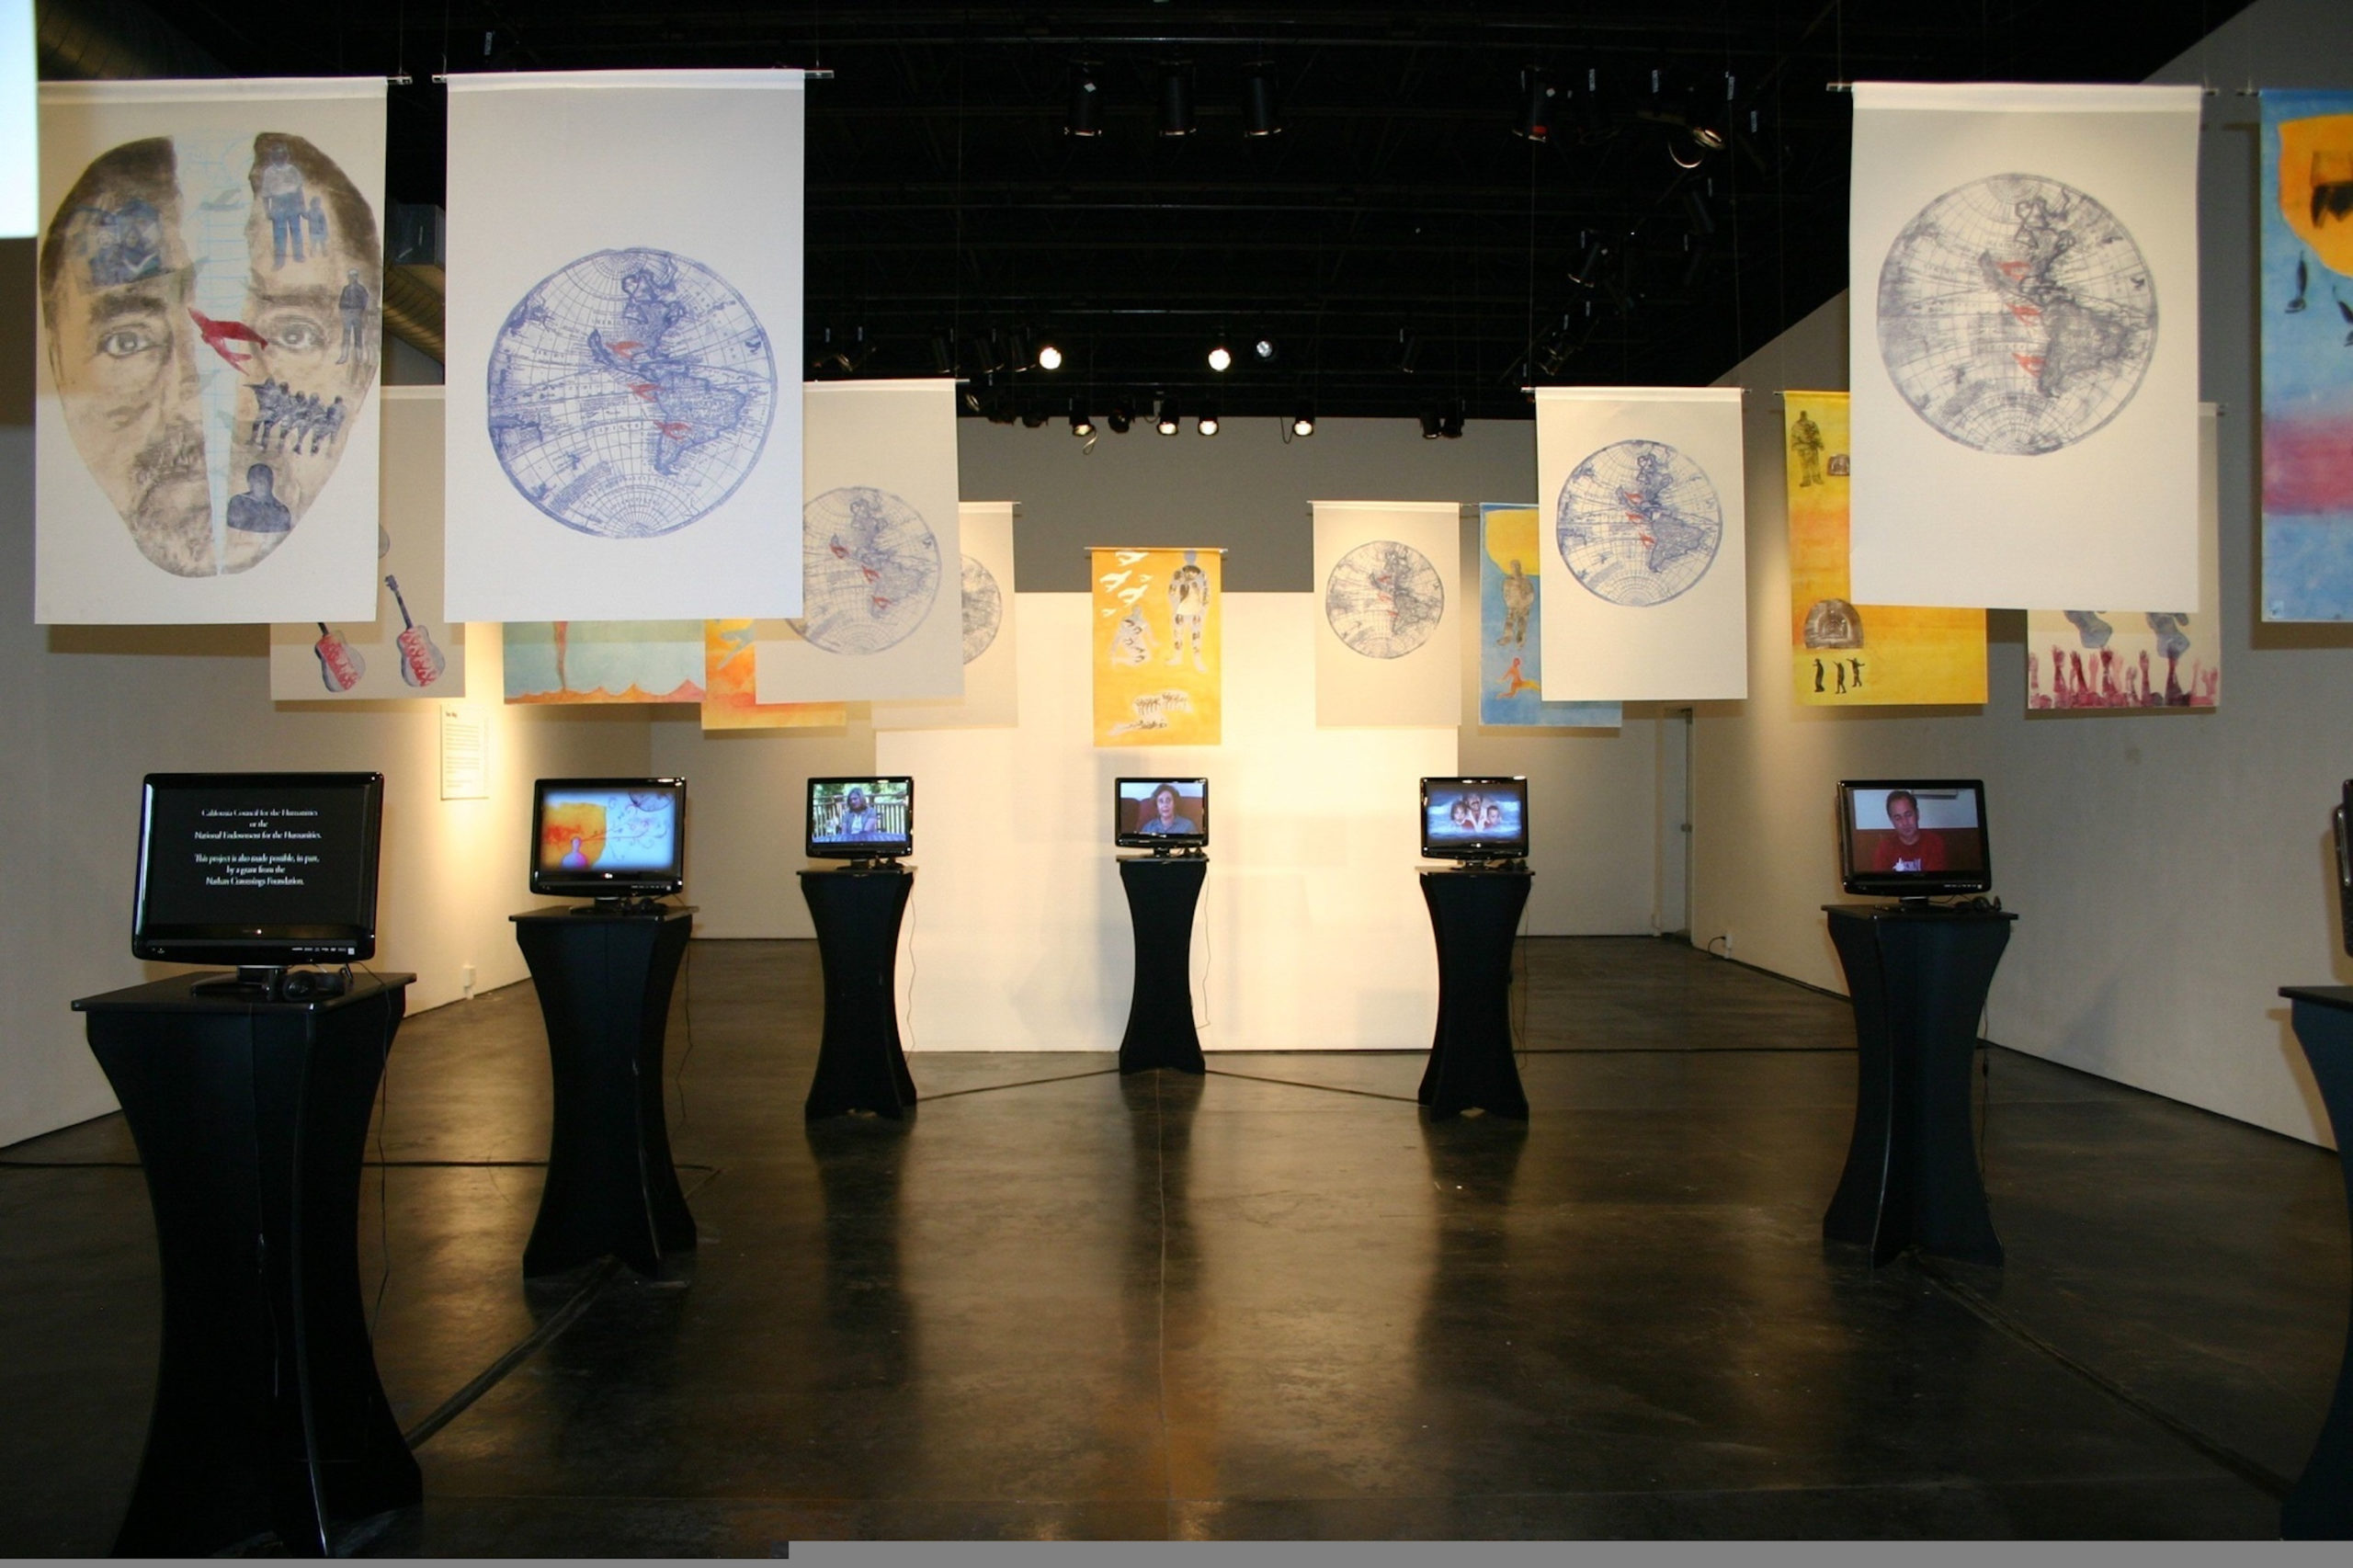 Photograph of a room with monitors and banners hanging from the ceiling.